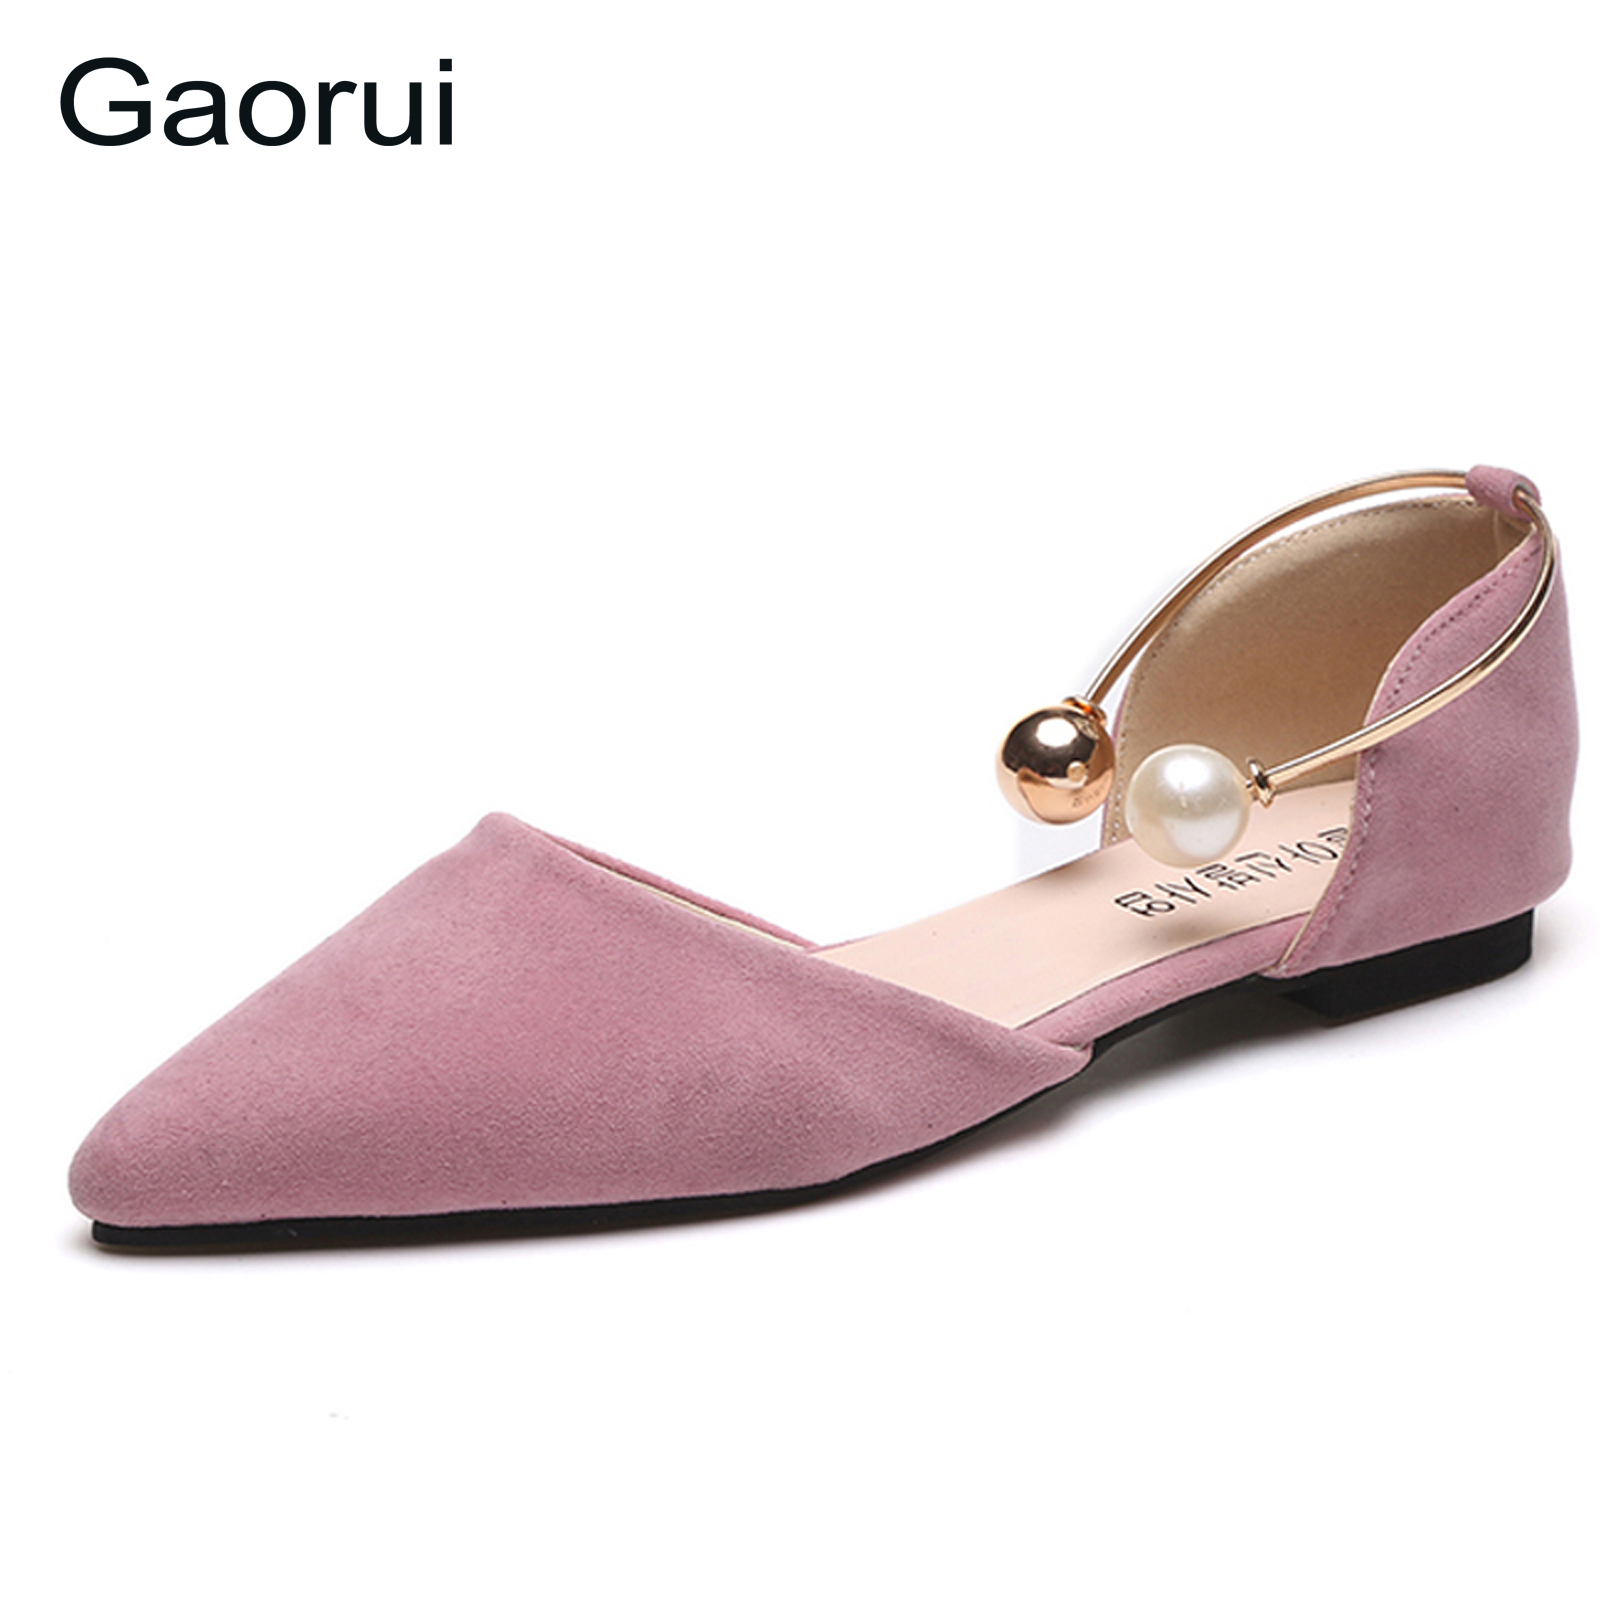 GAORUI 2017 New Women Fashion Shoes Casual Pearl Flats Pointed Toe Suede loafers flats Comfortable Shallow Mouth Single Shoe lin king fashion pearl pointed toe women flats shoes new arrive flock casual ladies shoes comfortable shallow mouth single shoes